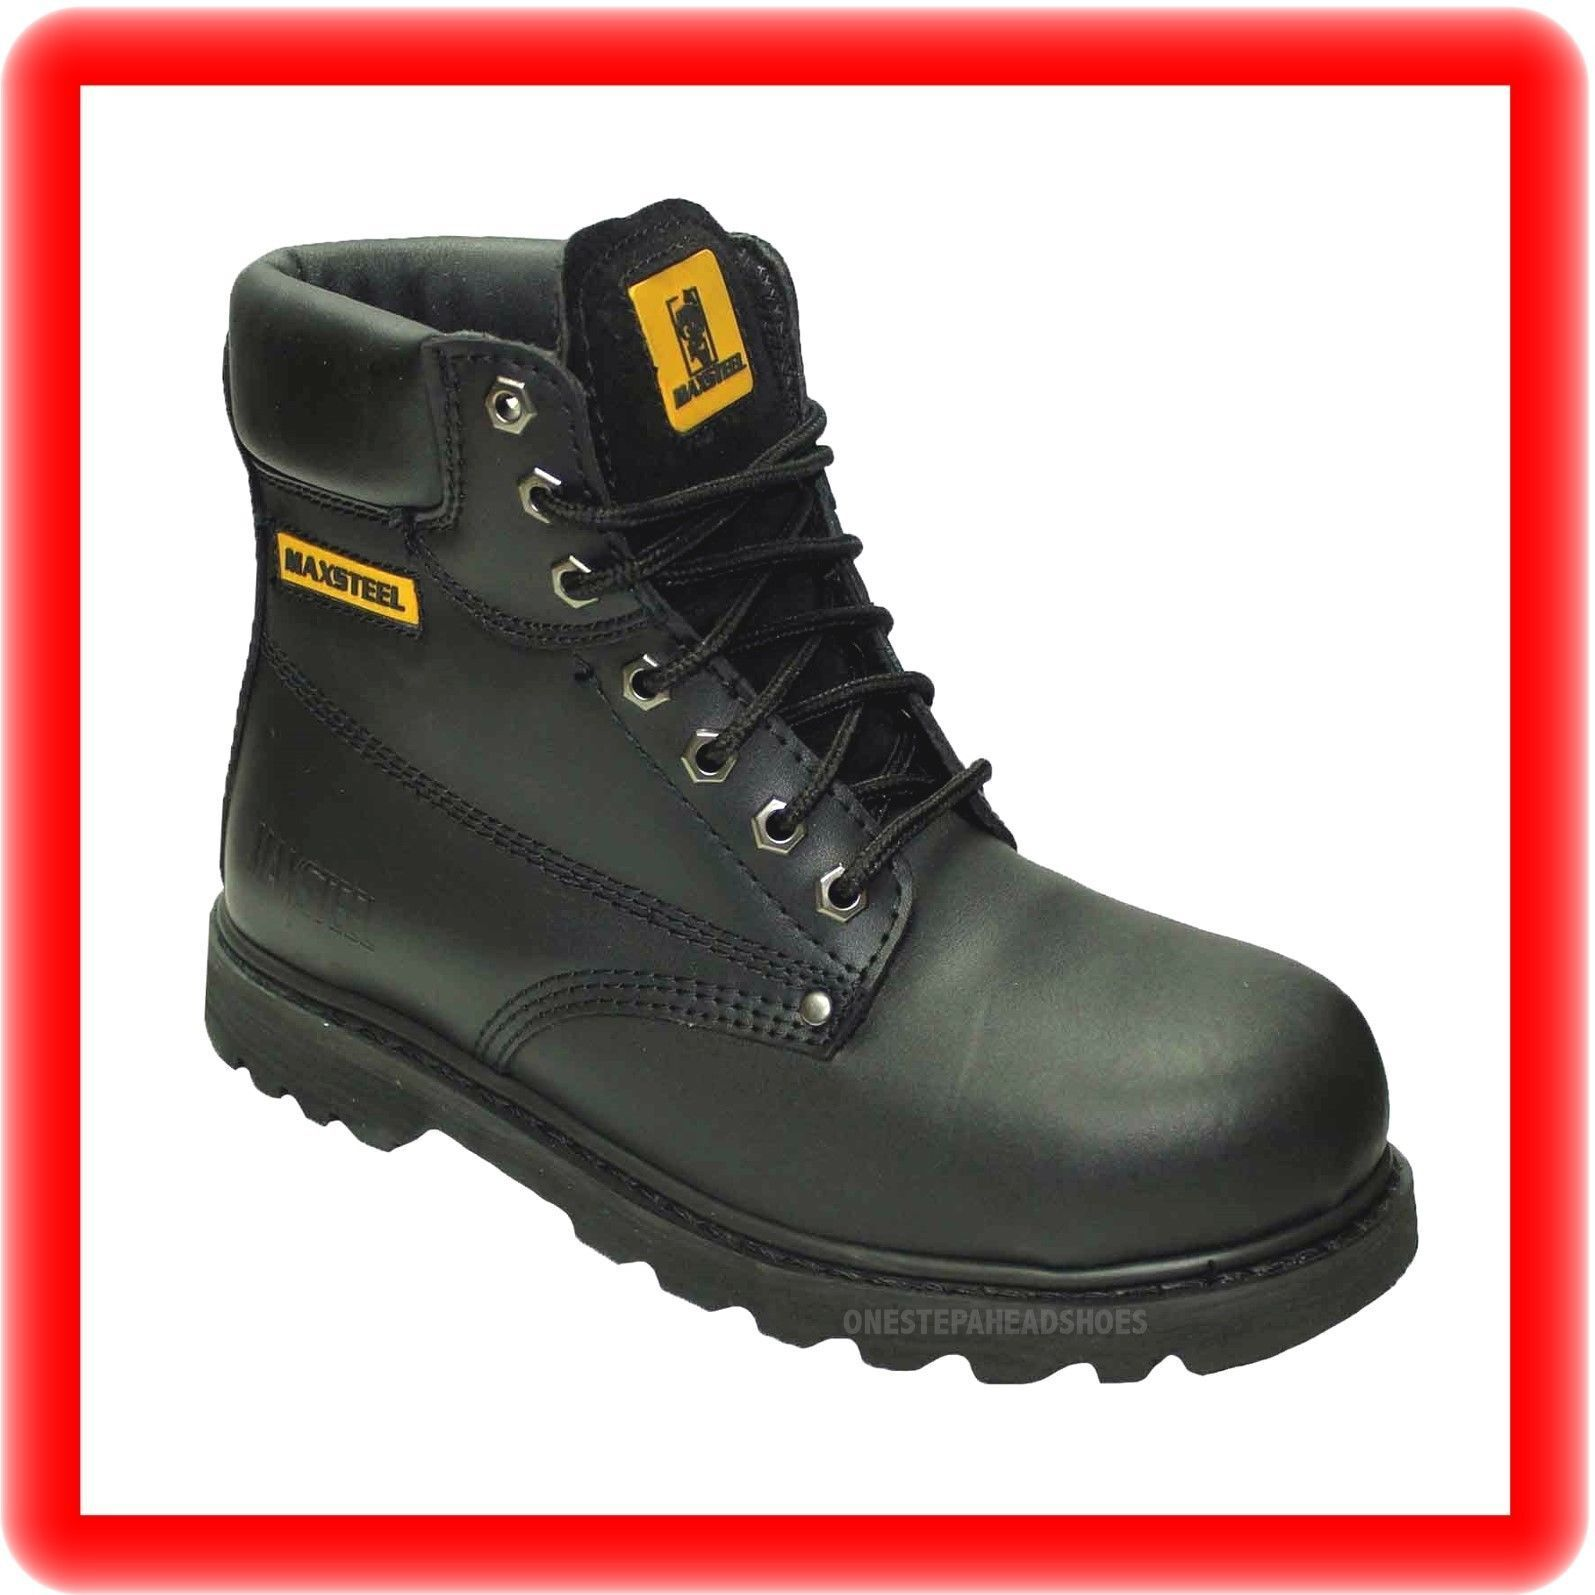 MENS NEW BLACK  LEATHER  SAFETY  WORK  BOOTS STEEL TOE CAP  SHOES   SIZE  9 43